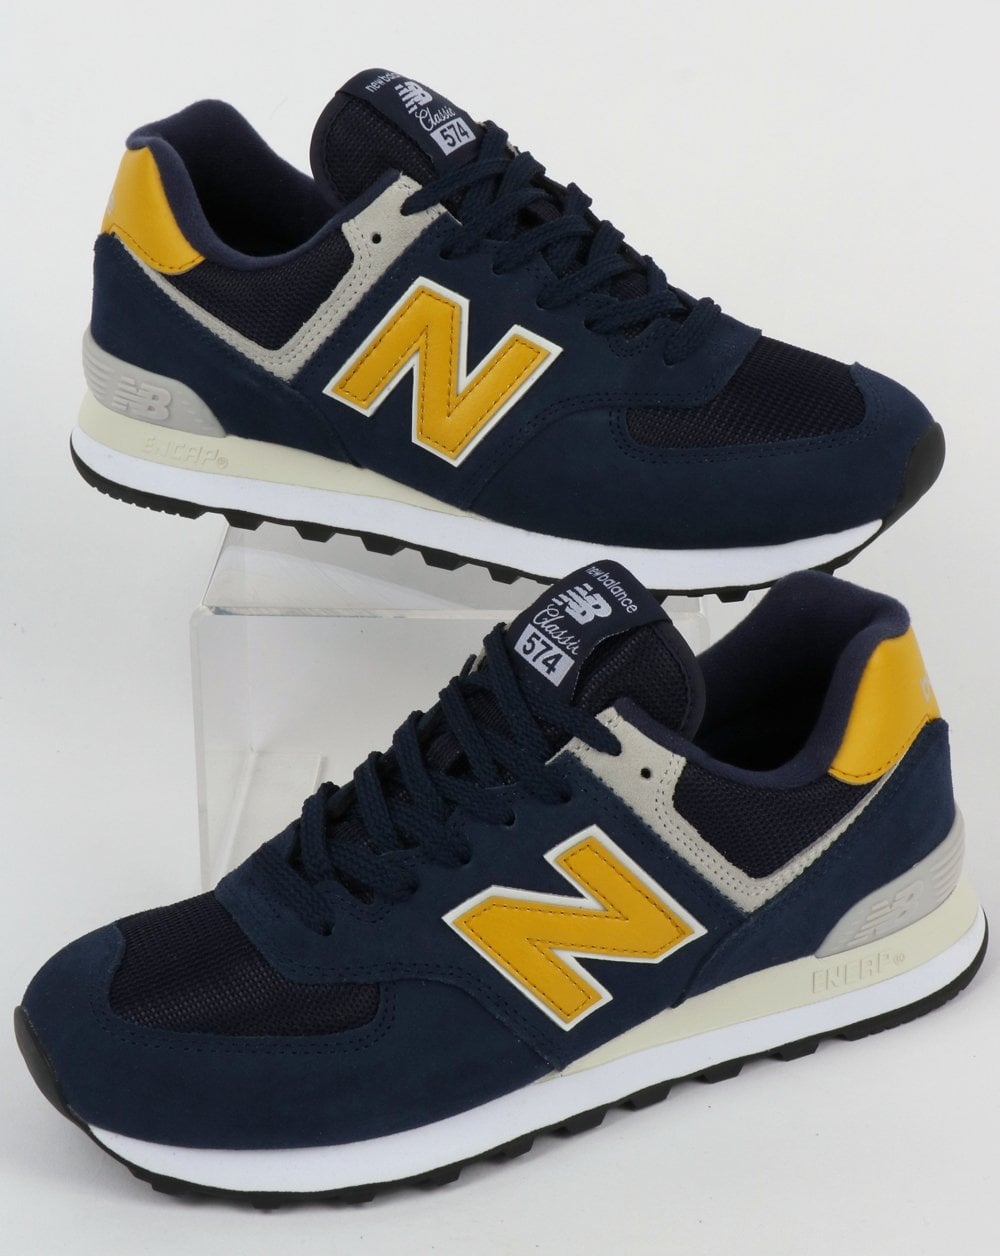 best sneakers 405bb 71bba New Balance 574 Trainers Navy/Yellow